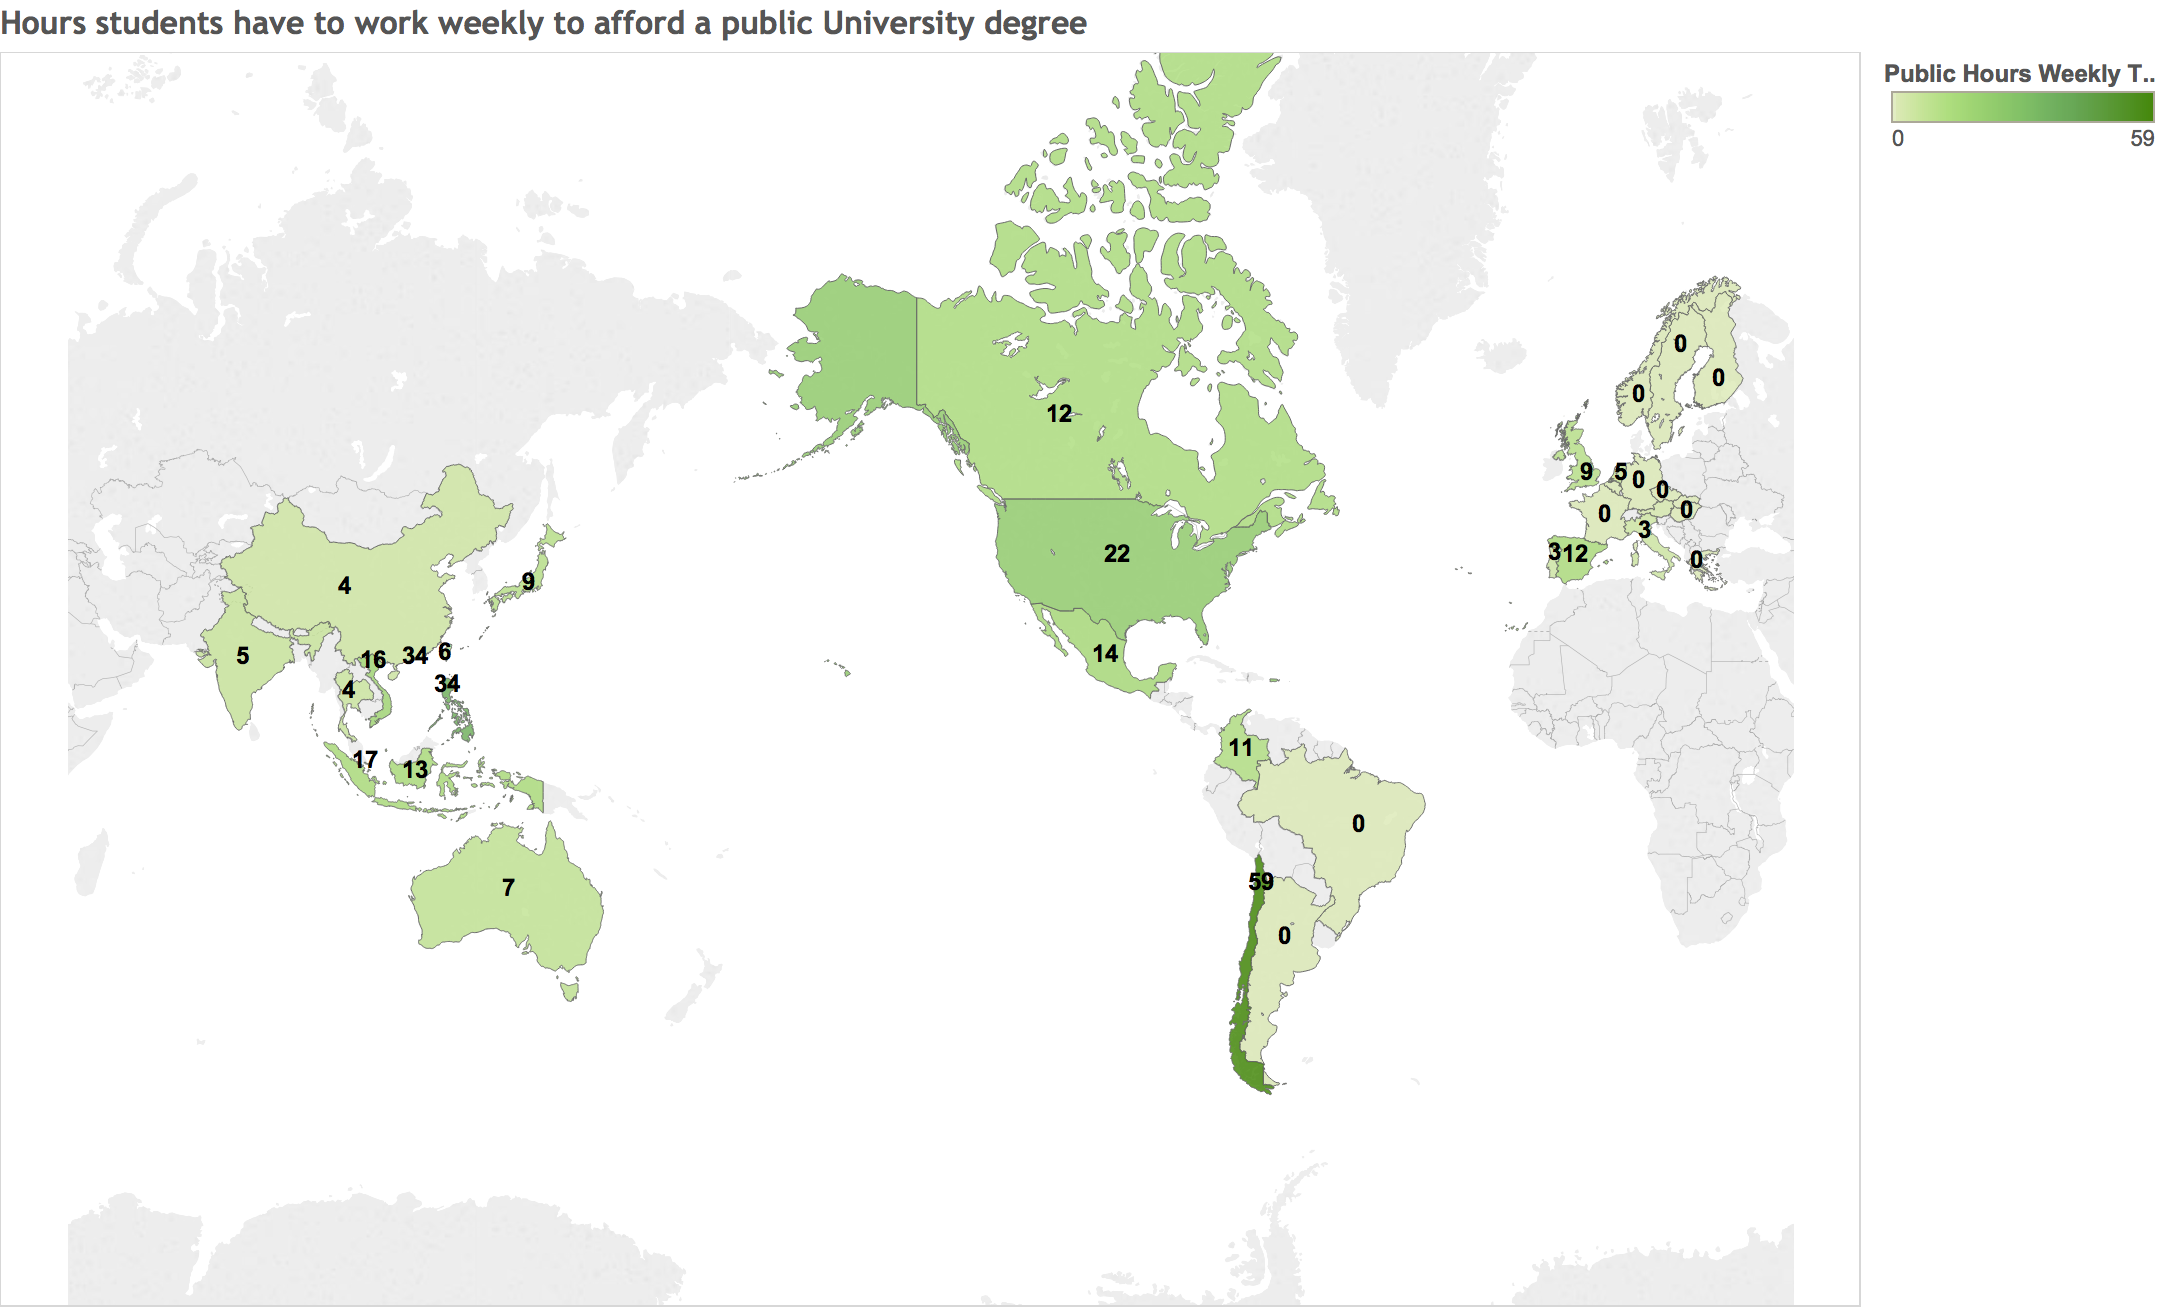 Weekly hours required to afford a public University degree